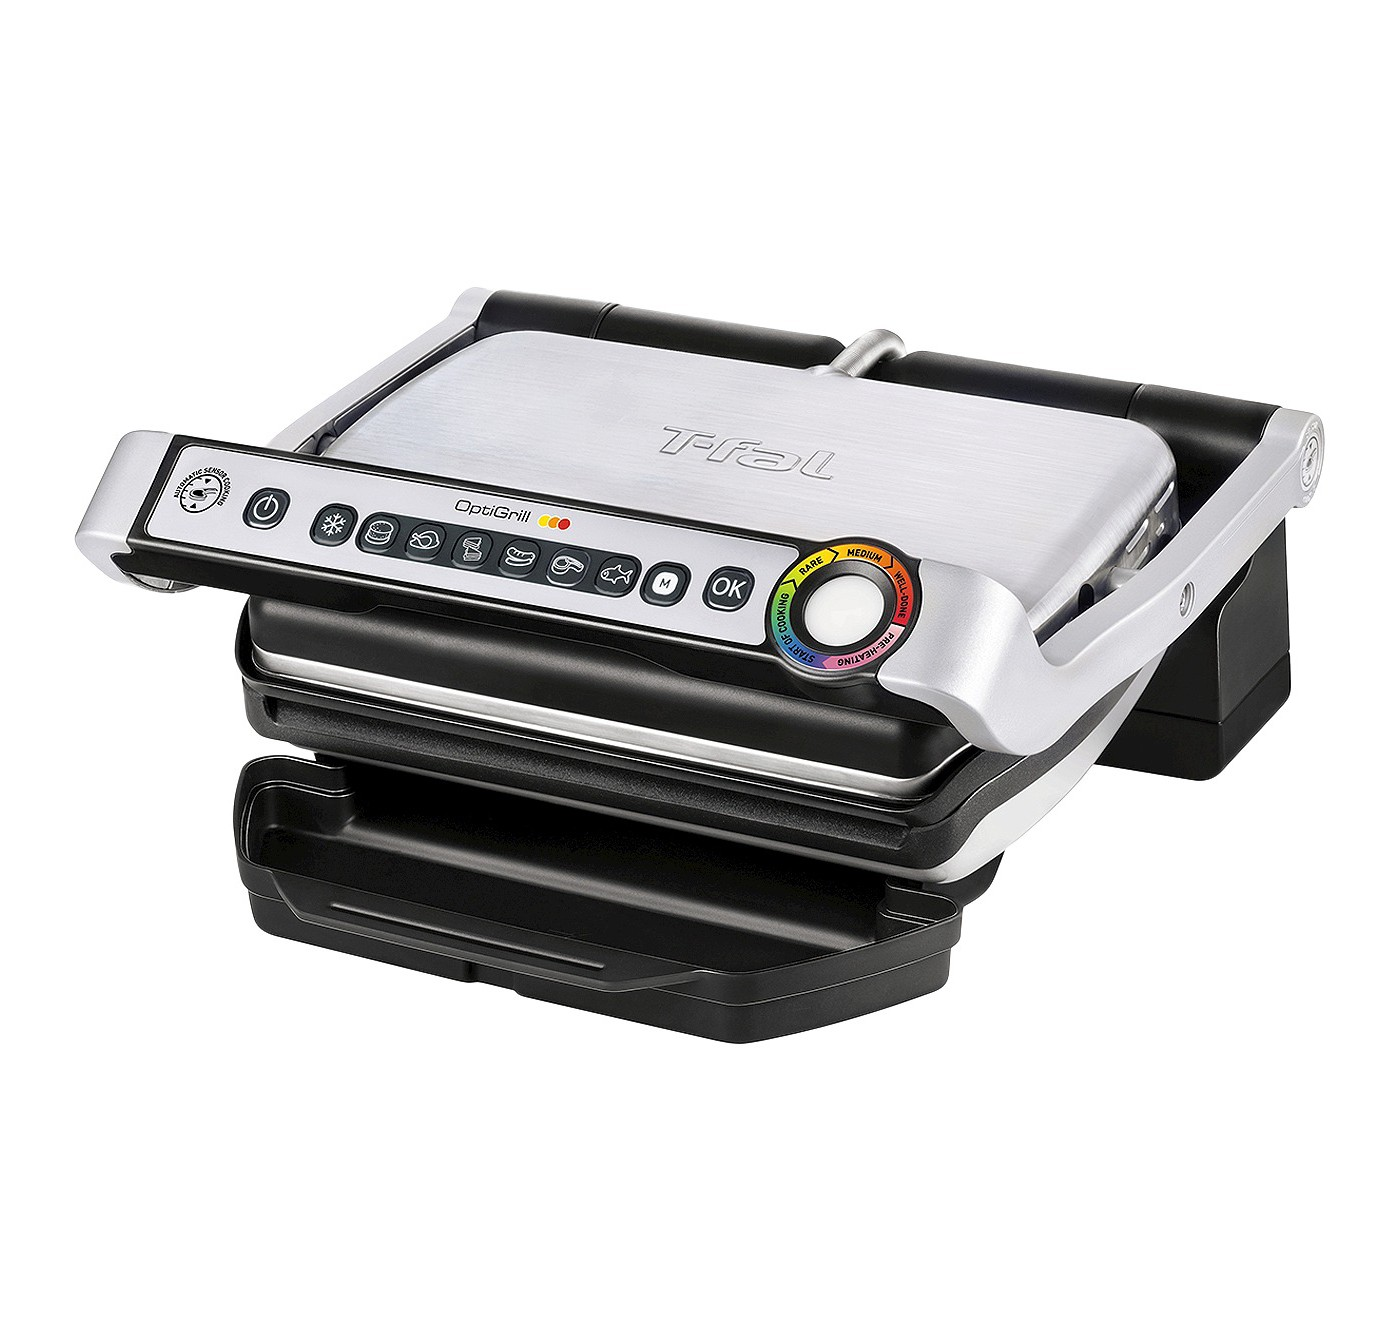 T-fal OptiGrill Indoor Grill - image 1 of 1